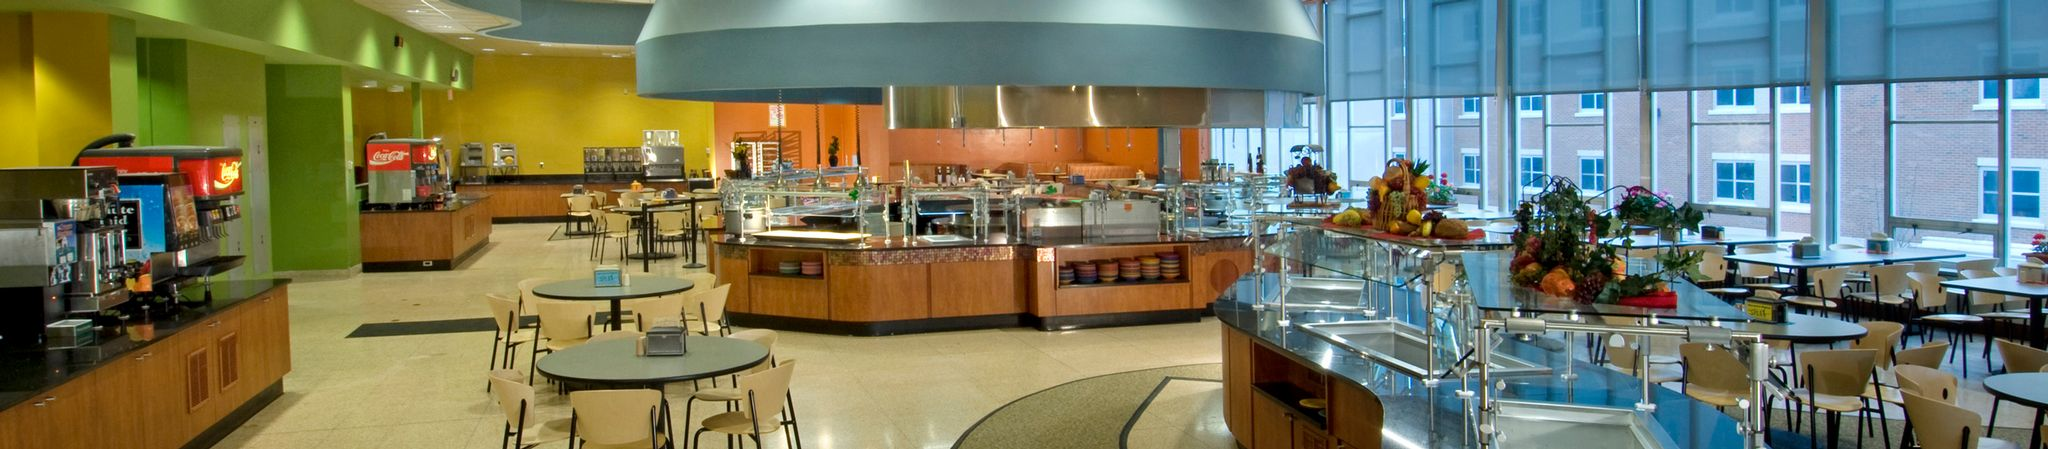 Unlimited access dining facility.